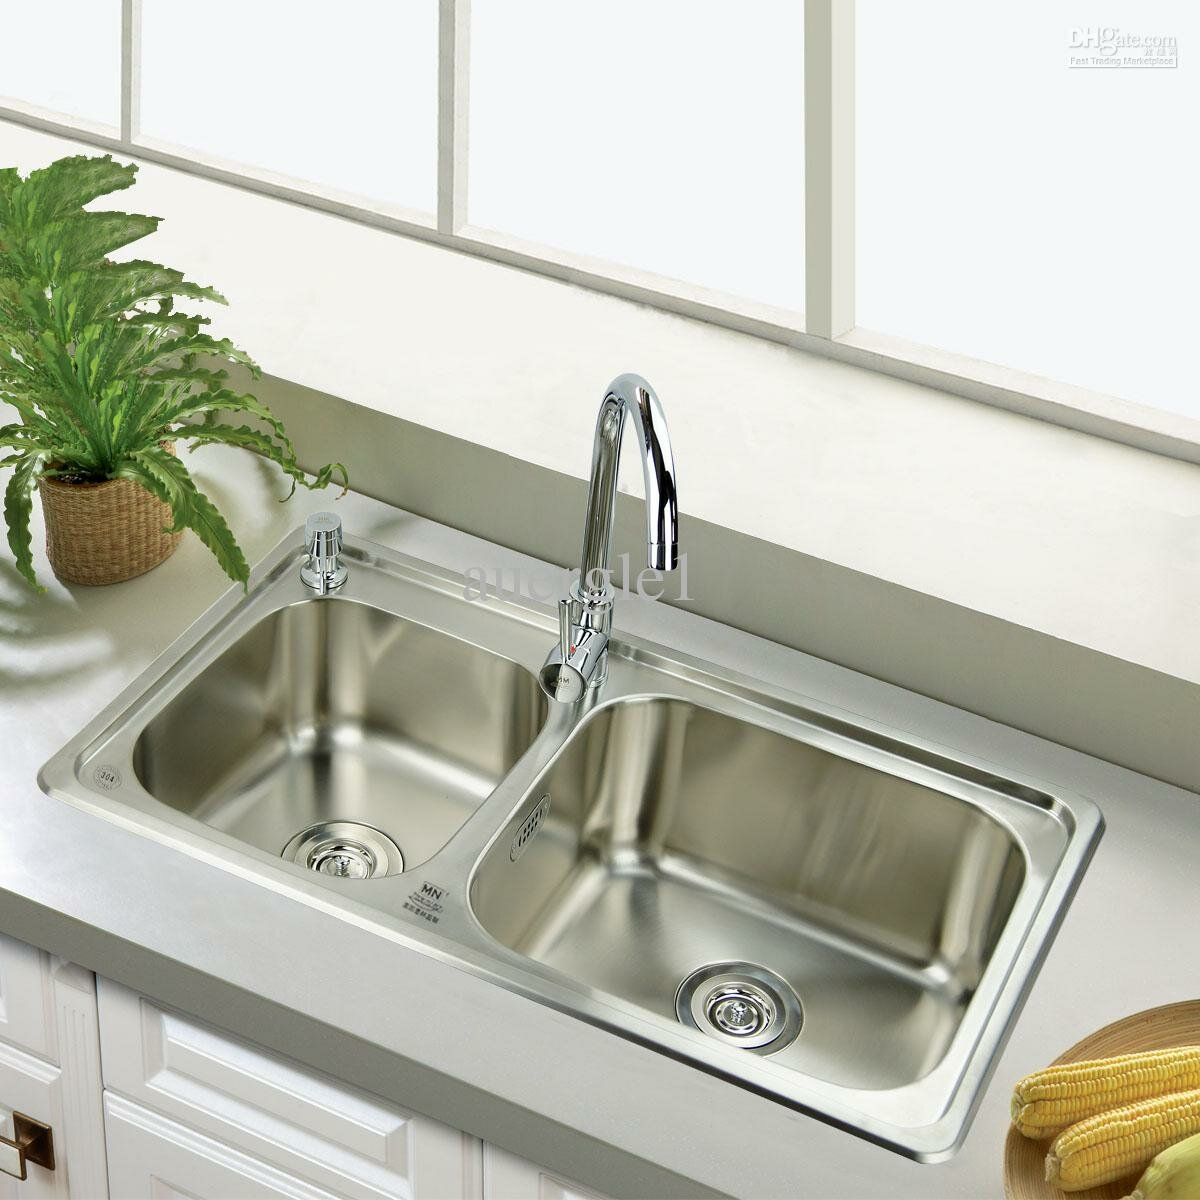 single stainless steel kitchen sink ss sinks kitchen sinks stainless steel. Interior Design Ideas. Home Design Ideas